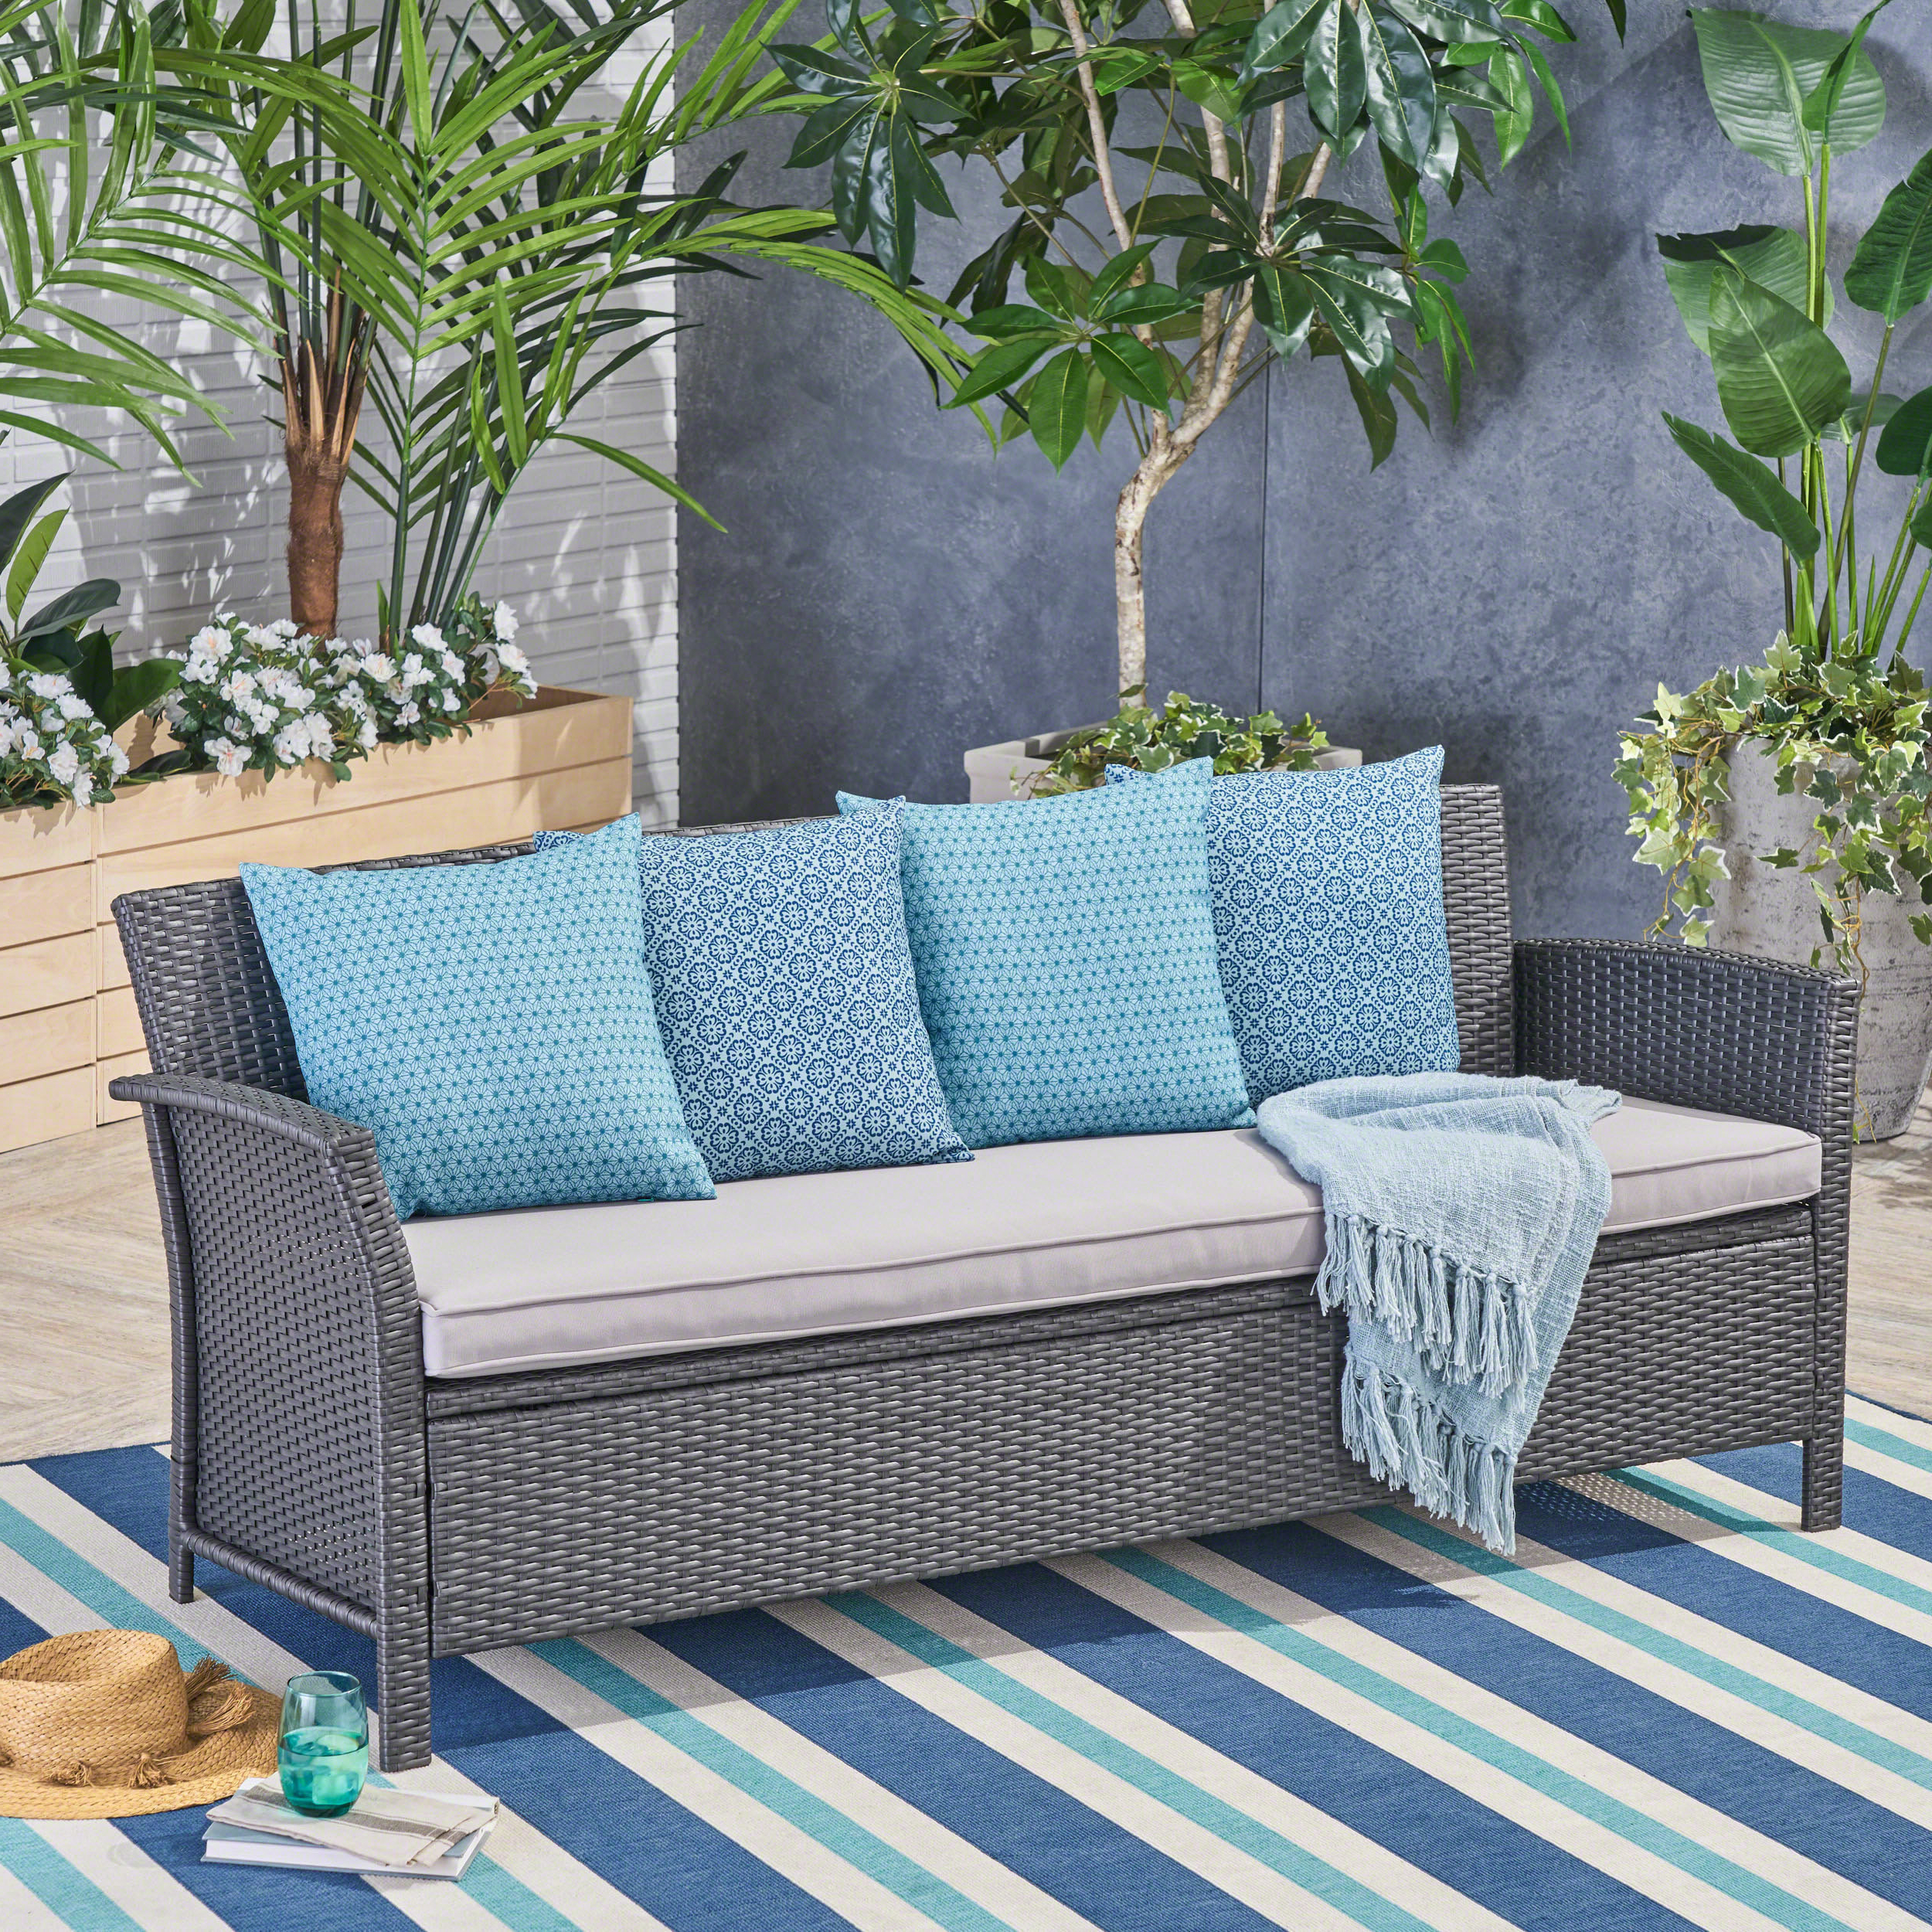 Fashionable Corchado Patio Sofa With Cushion Intended For Stockwell Patio Sofas With Cushions (View 3 of 20)